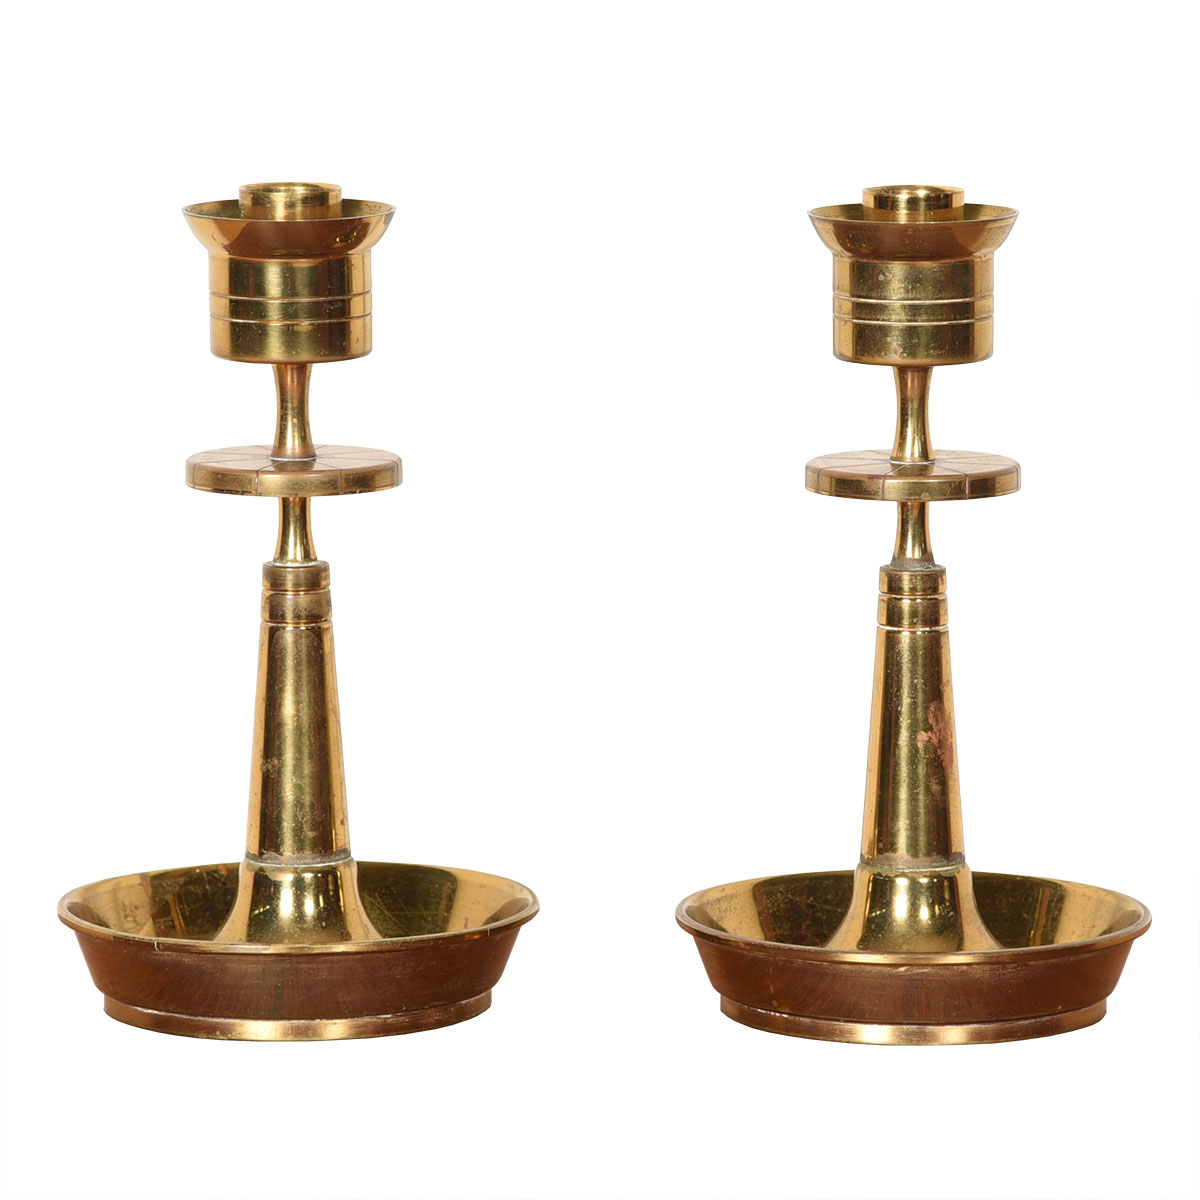 Vintage Mid Century Brass Table Candle Holder